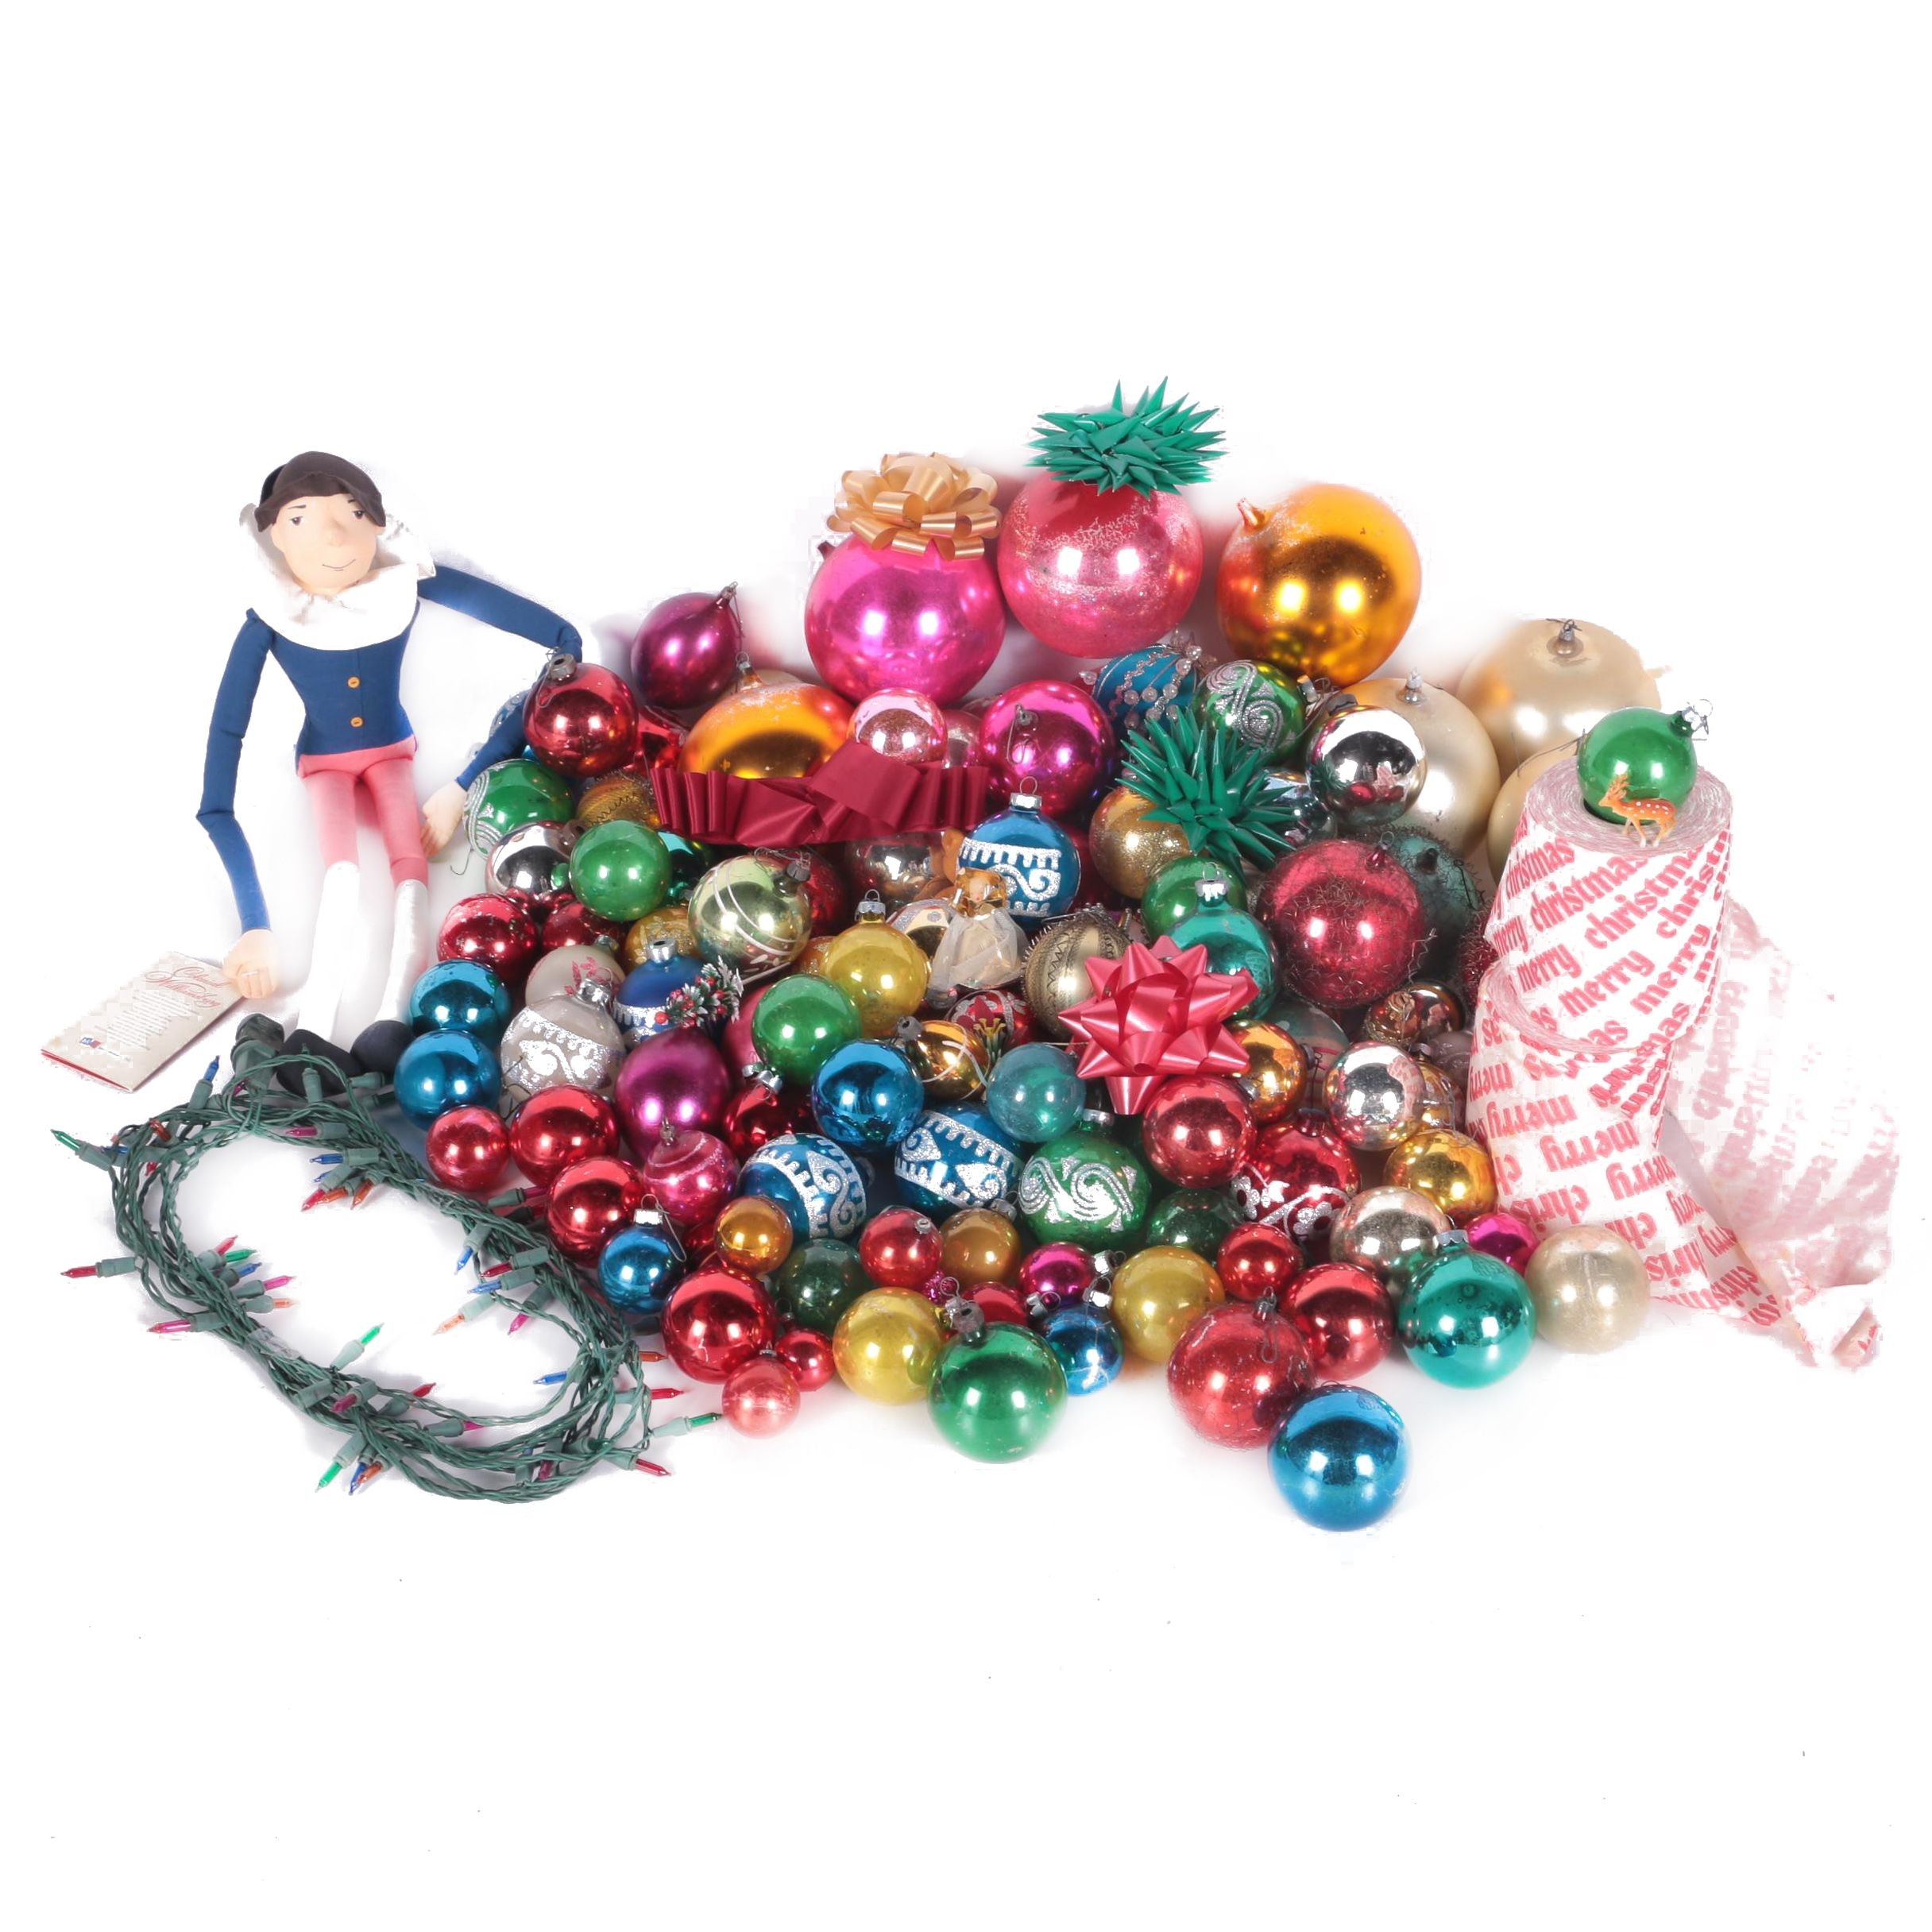 Large Collection of Vintage Christmas Decor